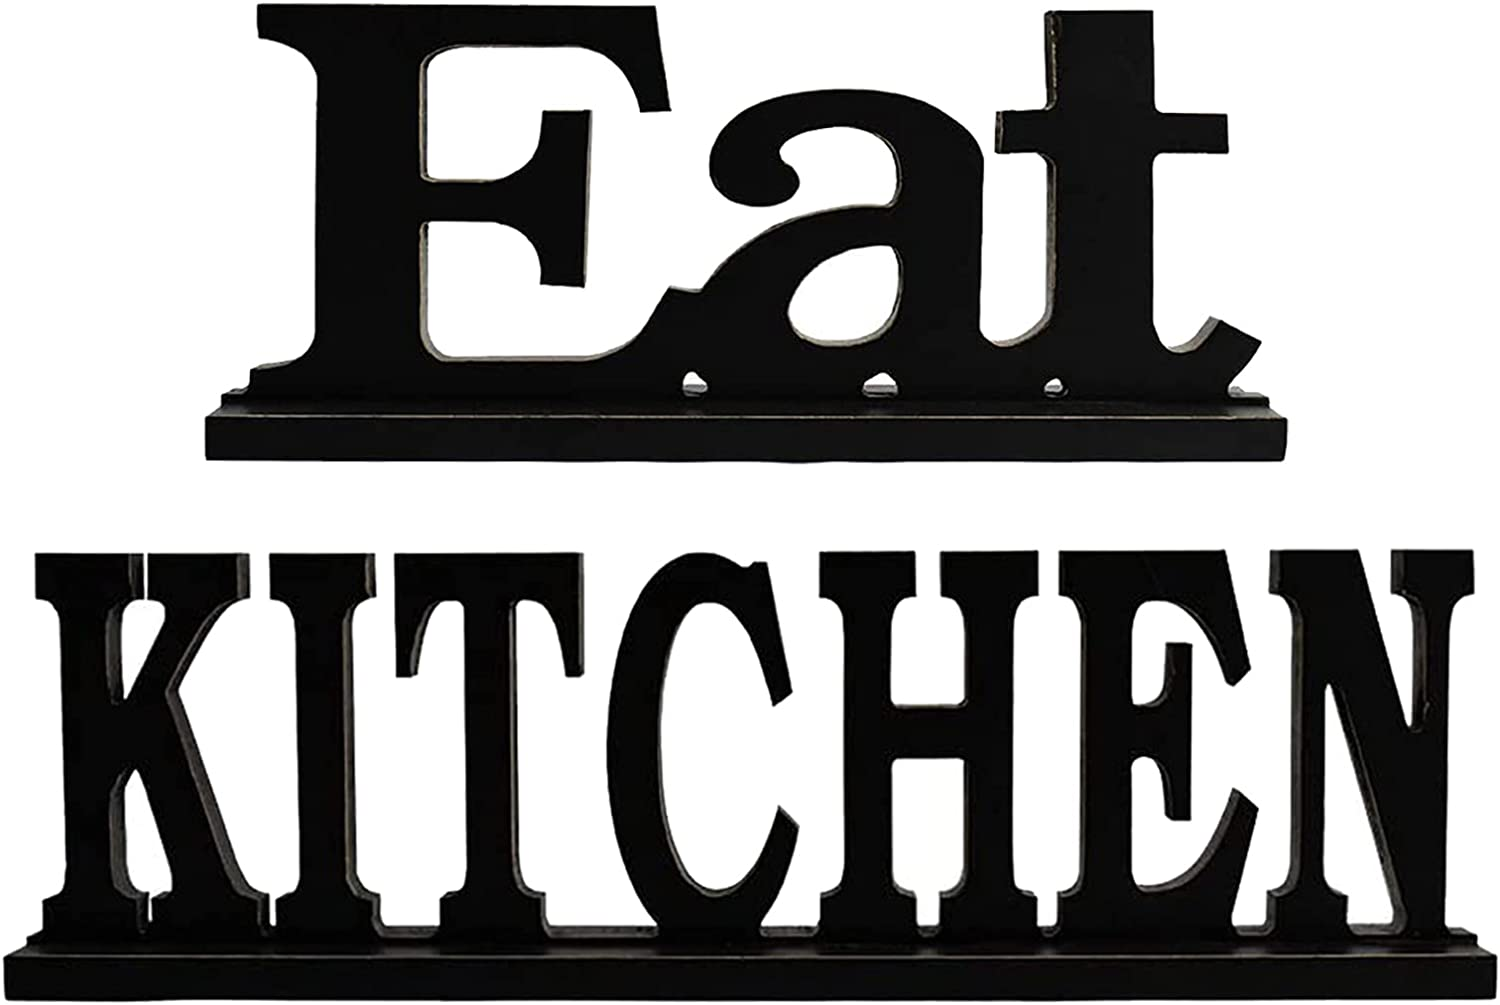 Rustic Wood Sign Home Decor Wooden Freestanding Table Letter Block Word Cutout Tabletop Centerpiece Decorative Signs for Mantel (Eat + Kitchen)